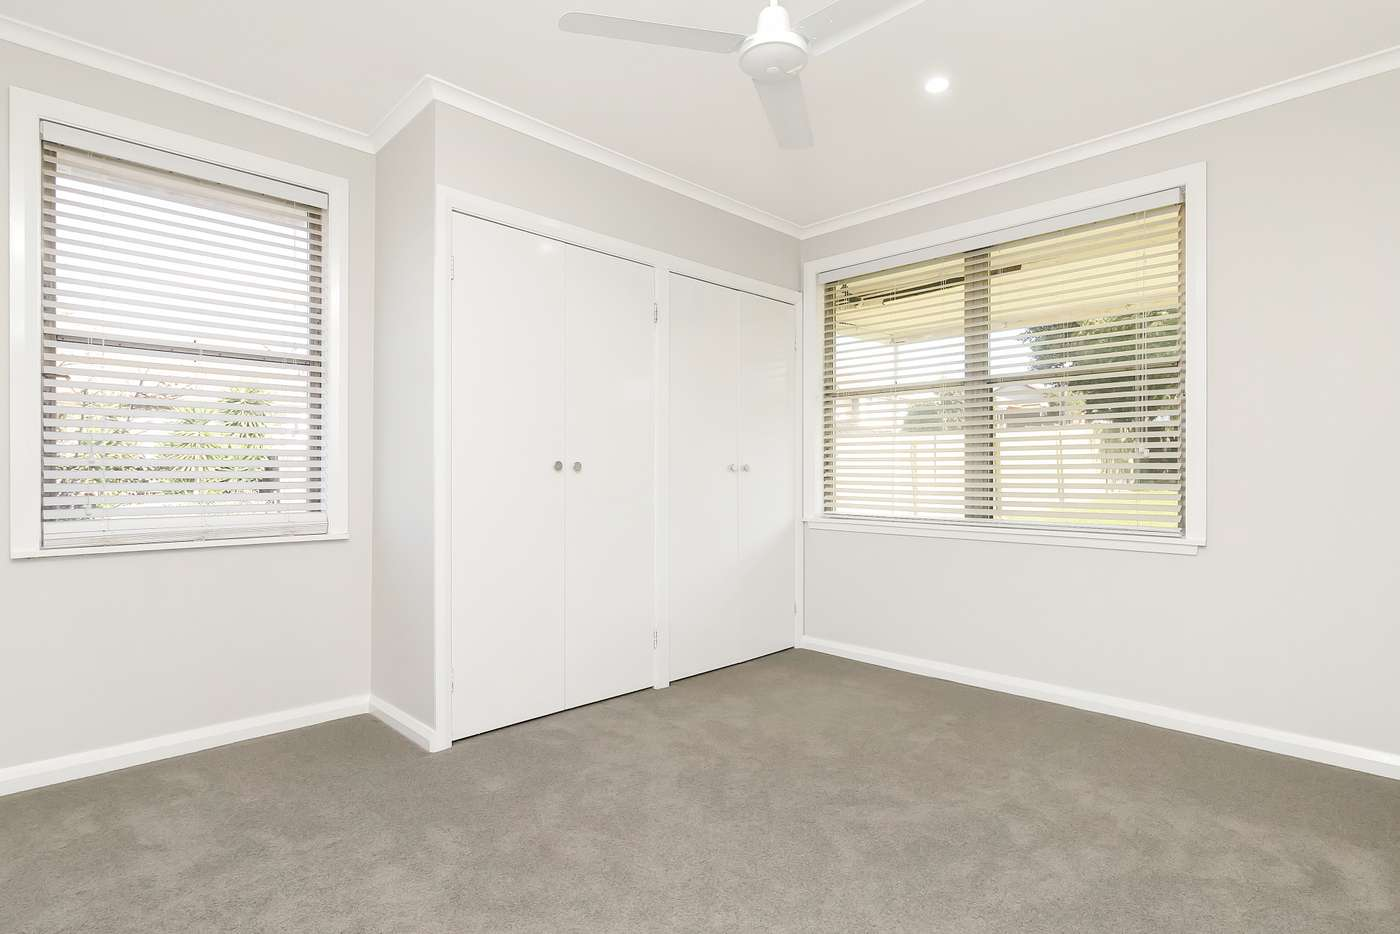 Sixth view of Homely house listing, 7 Lidgett Street, Bacchus Marsh VIC 3340